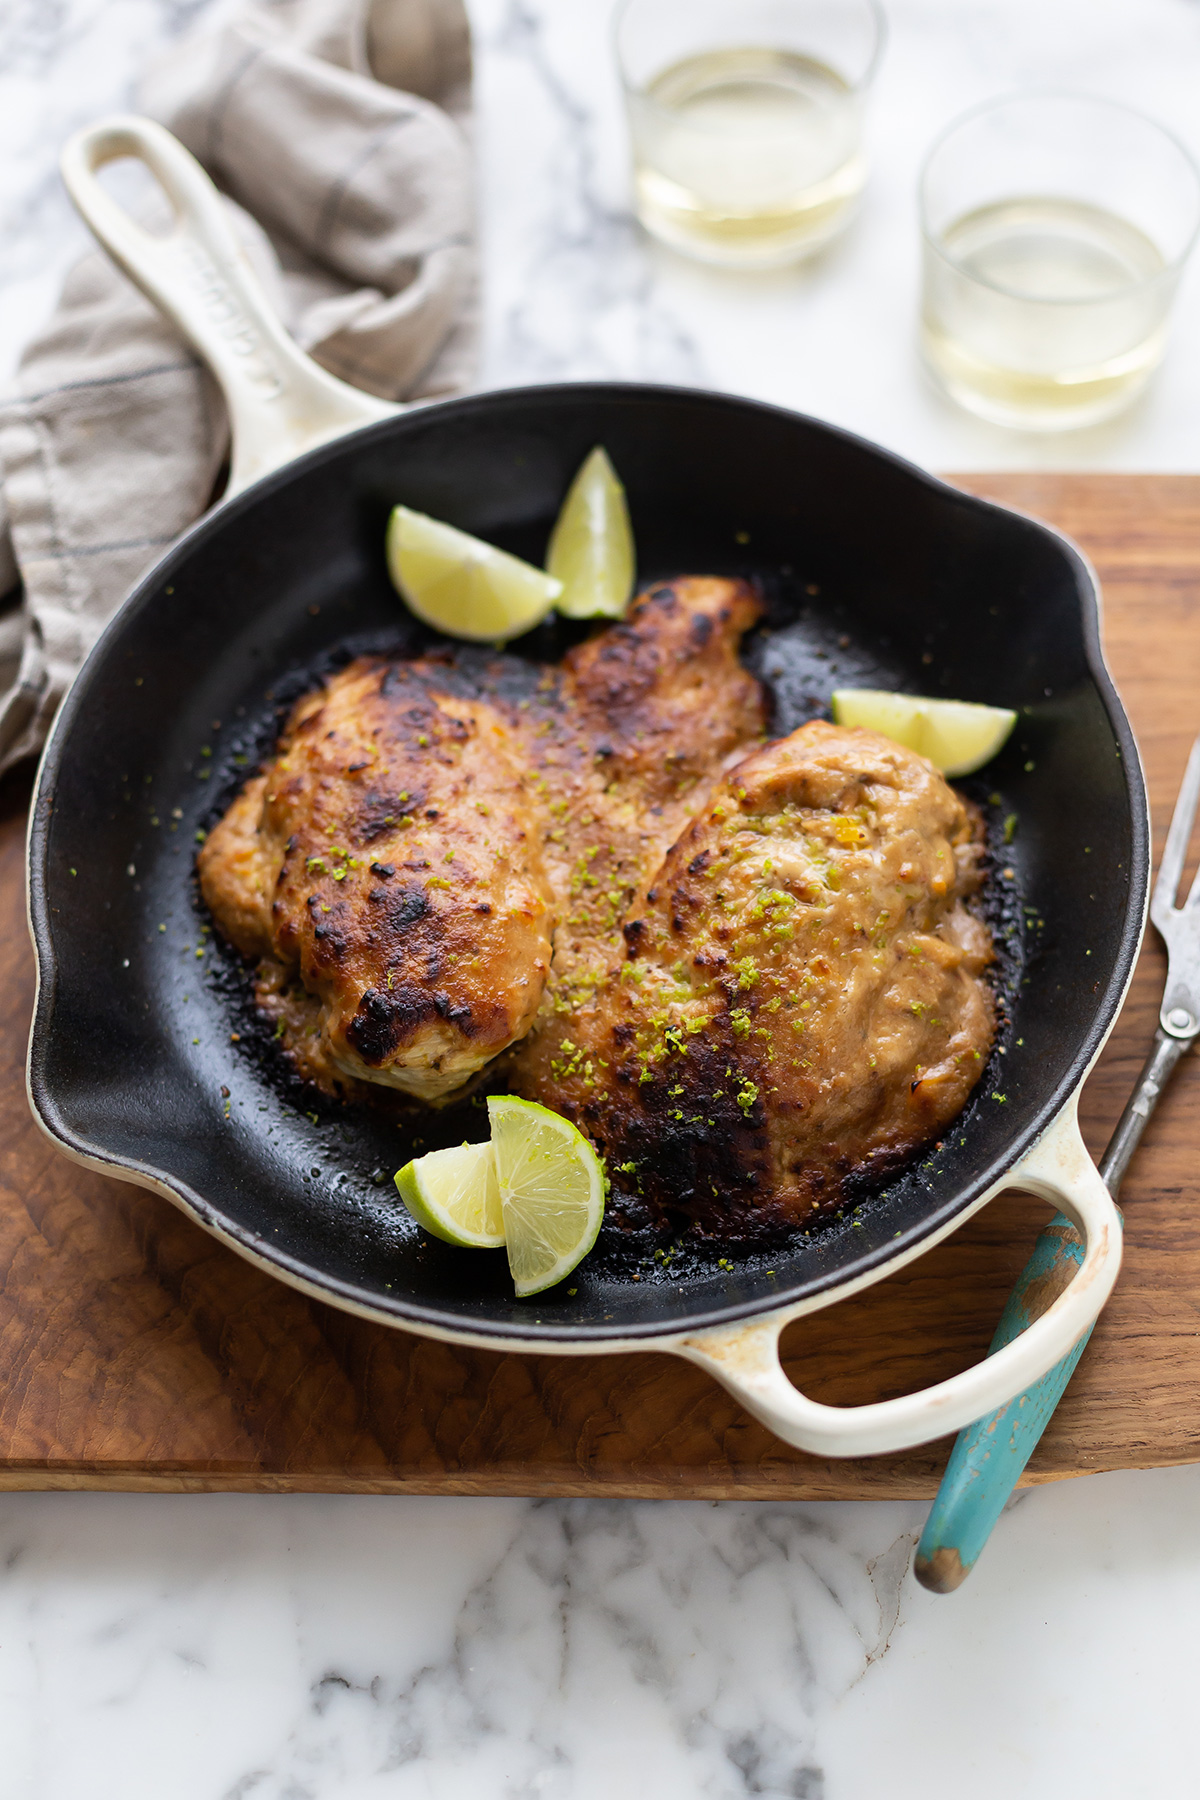 Jamie Oliver's gnarled peanut chicken with a lime and chili recipe